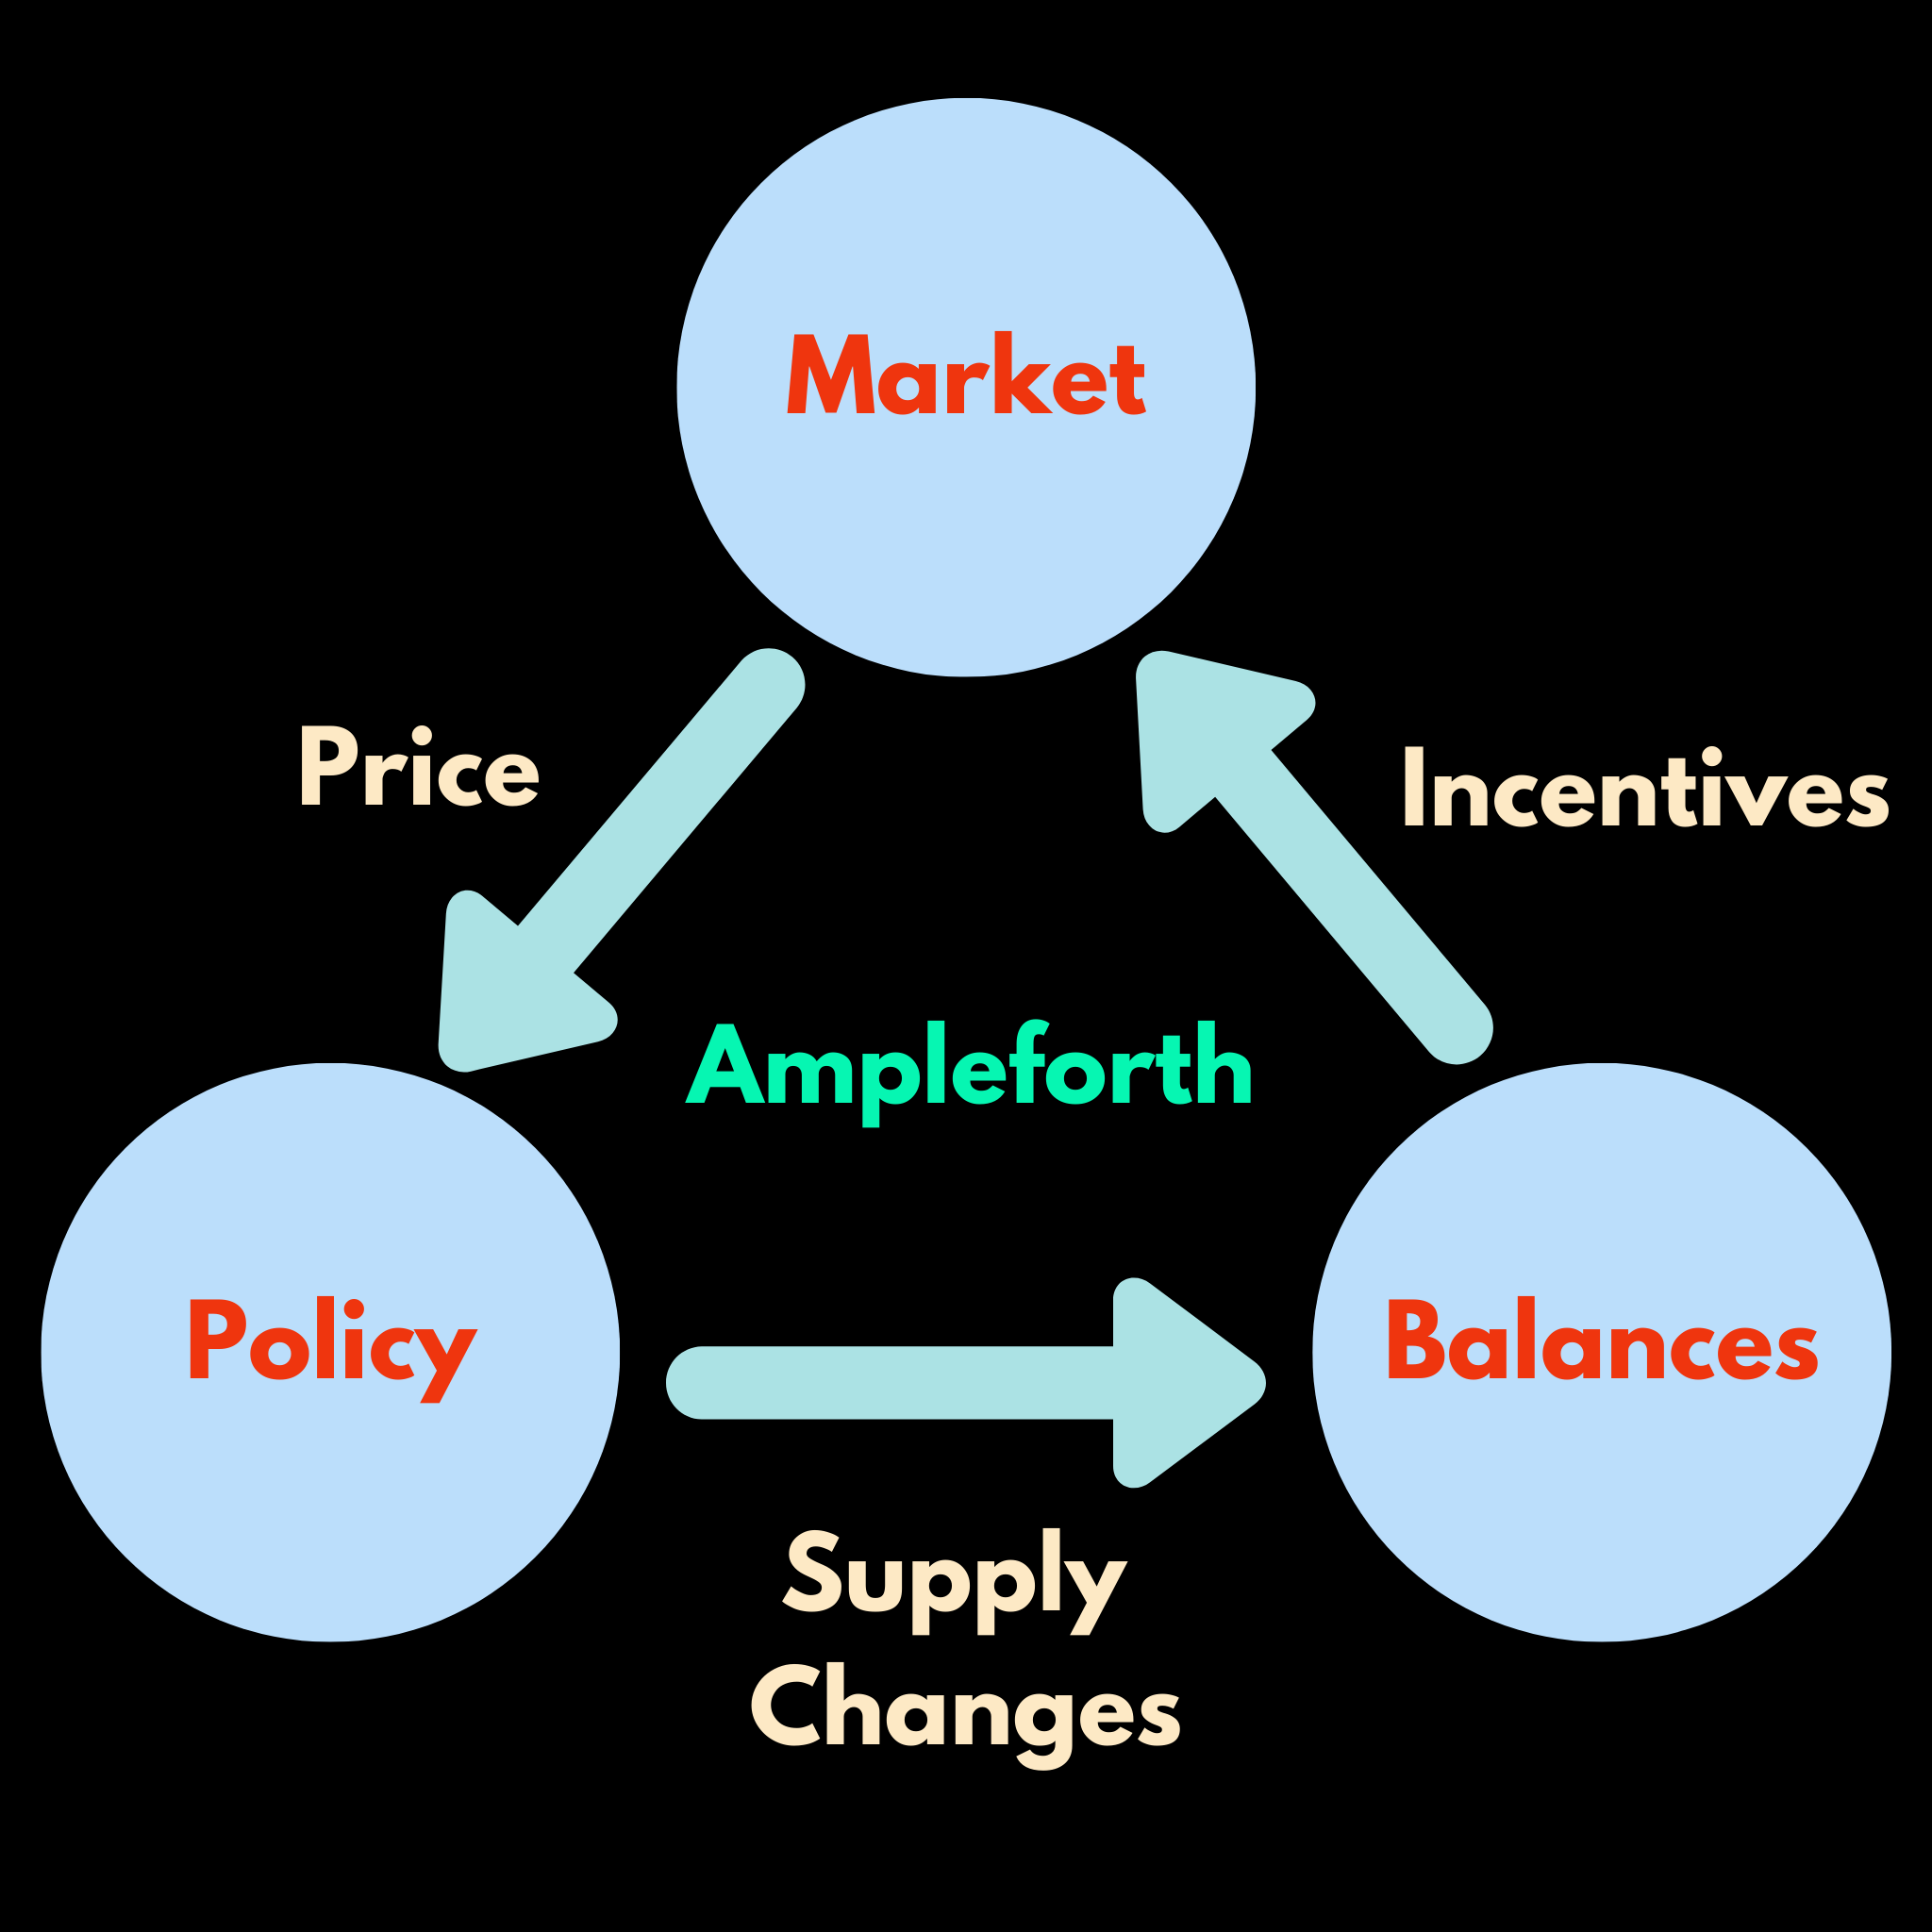 What would be the price of Ampleforth at the end of 2020 ?